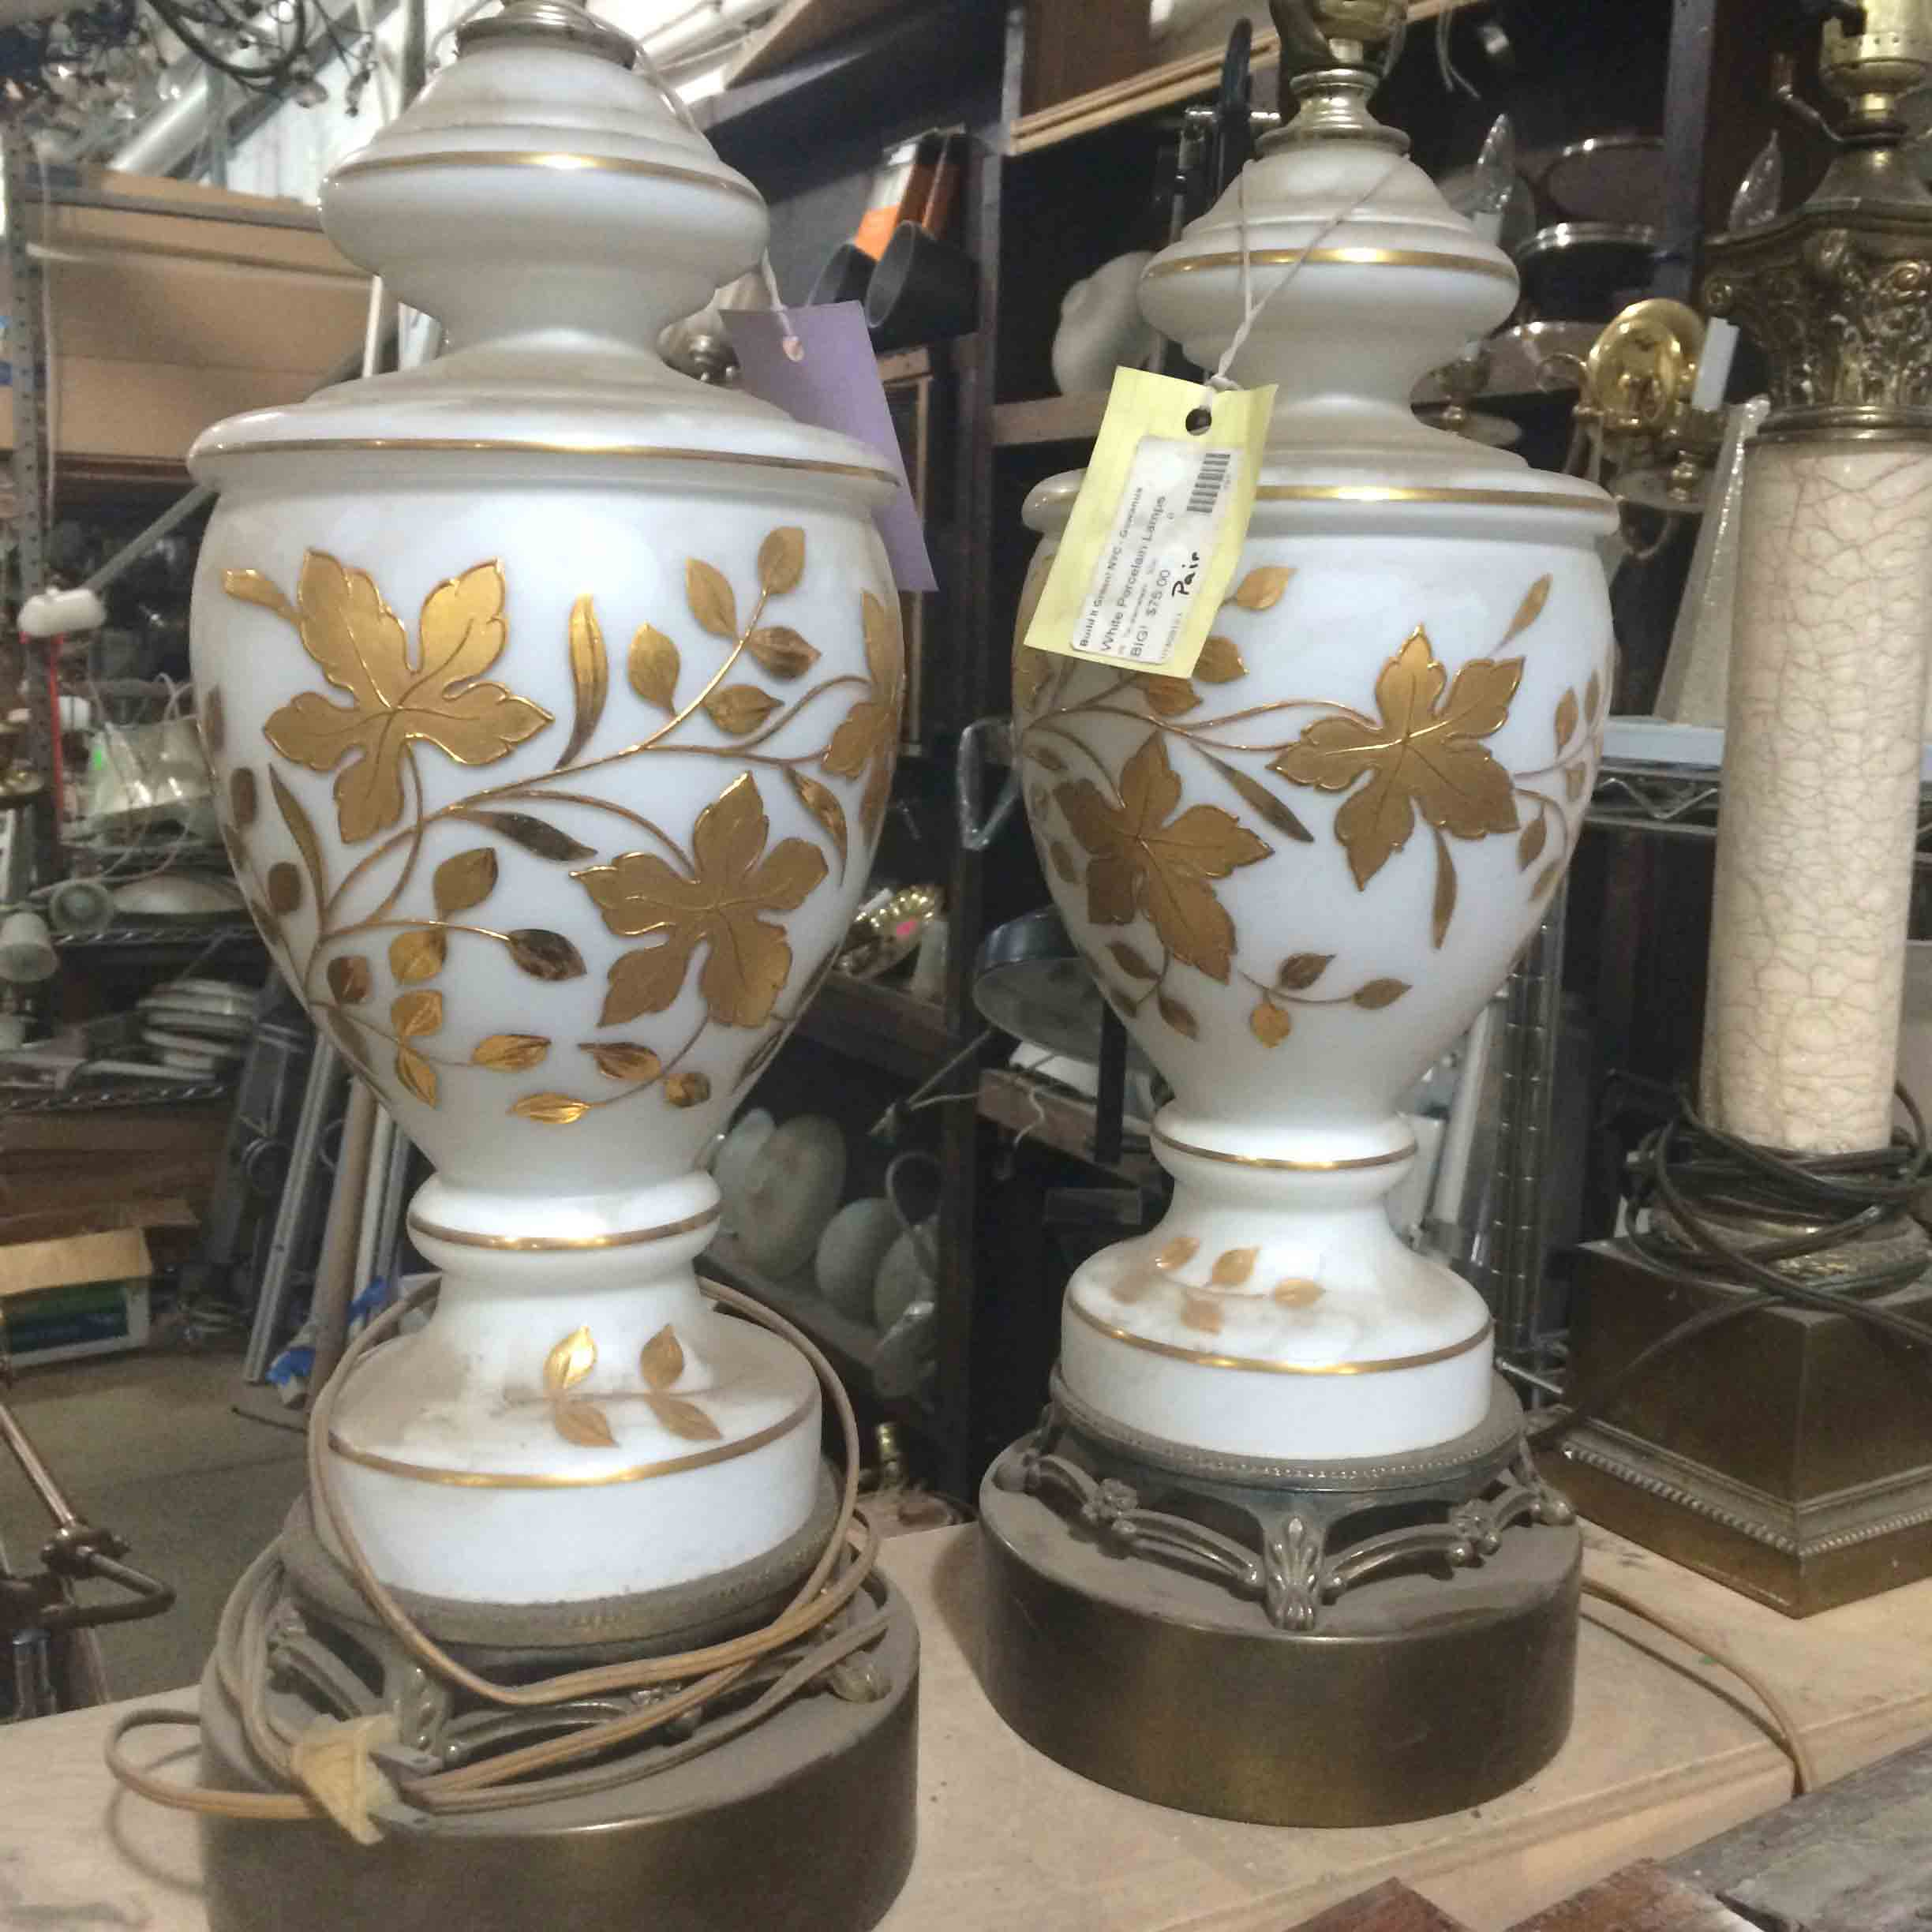 Lamp Bases $75 for the pair